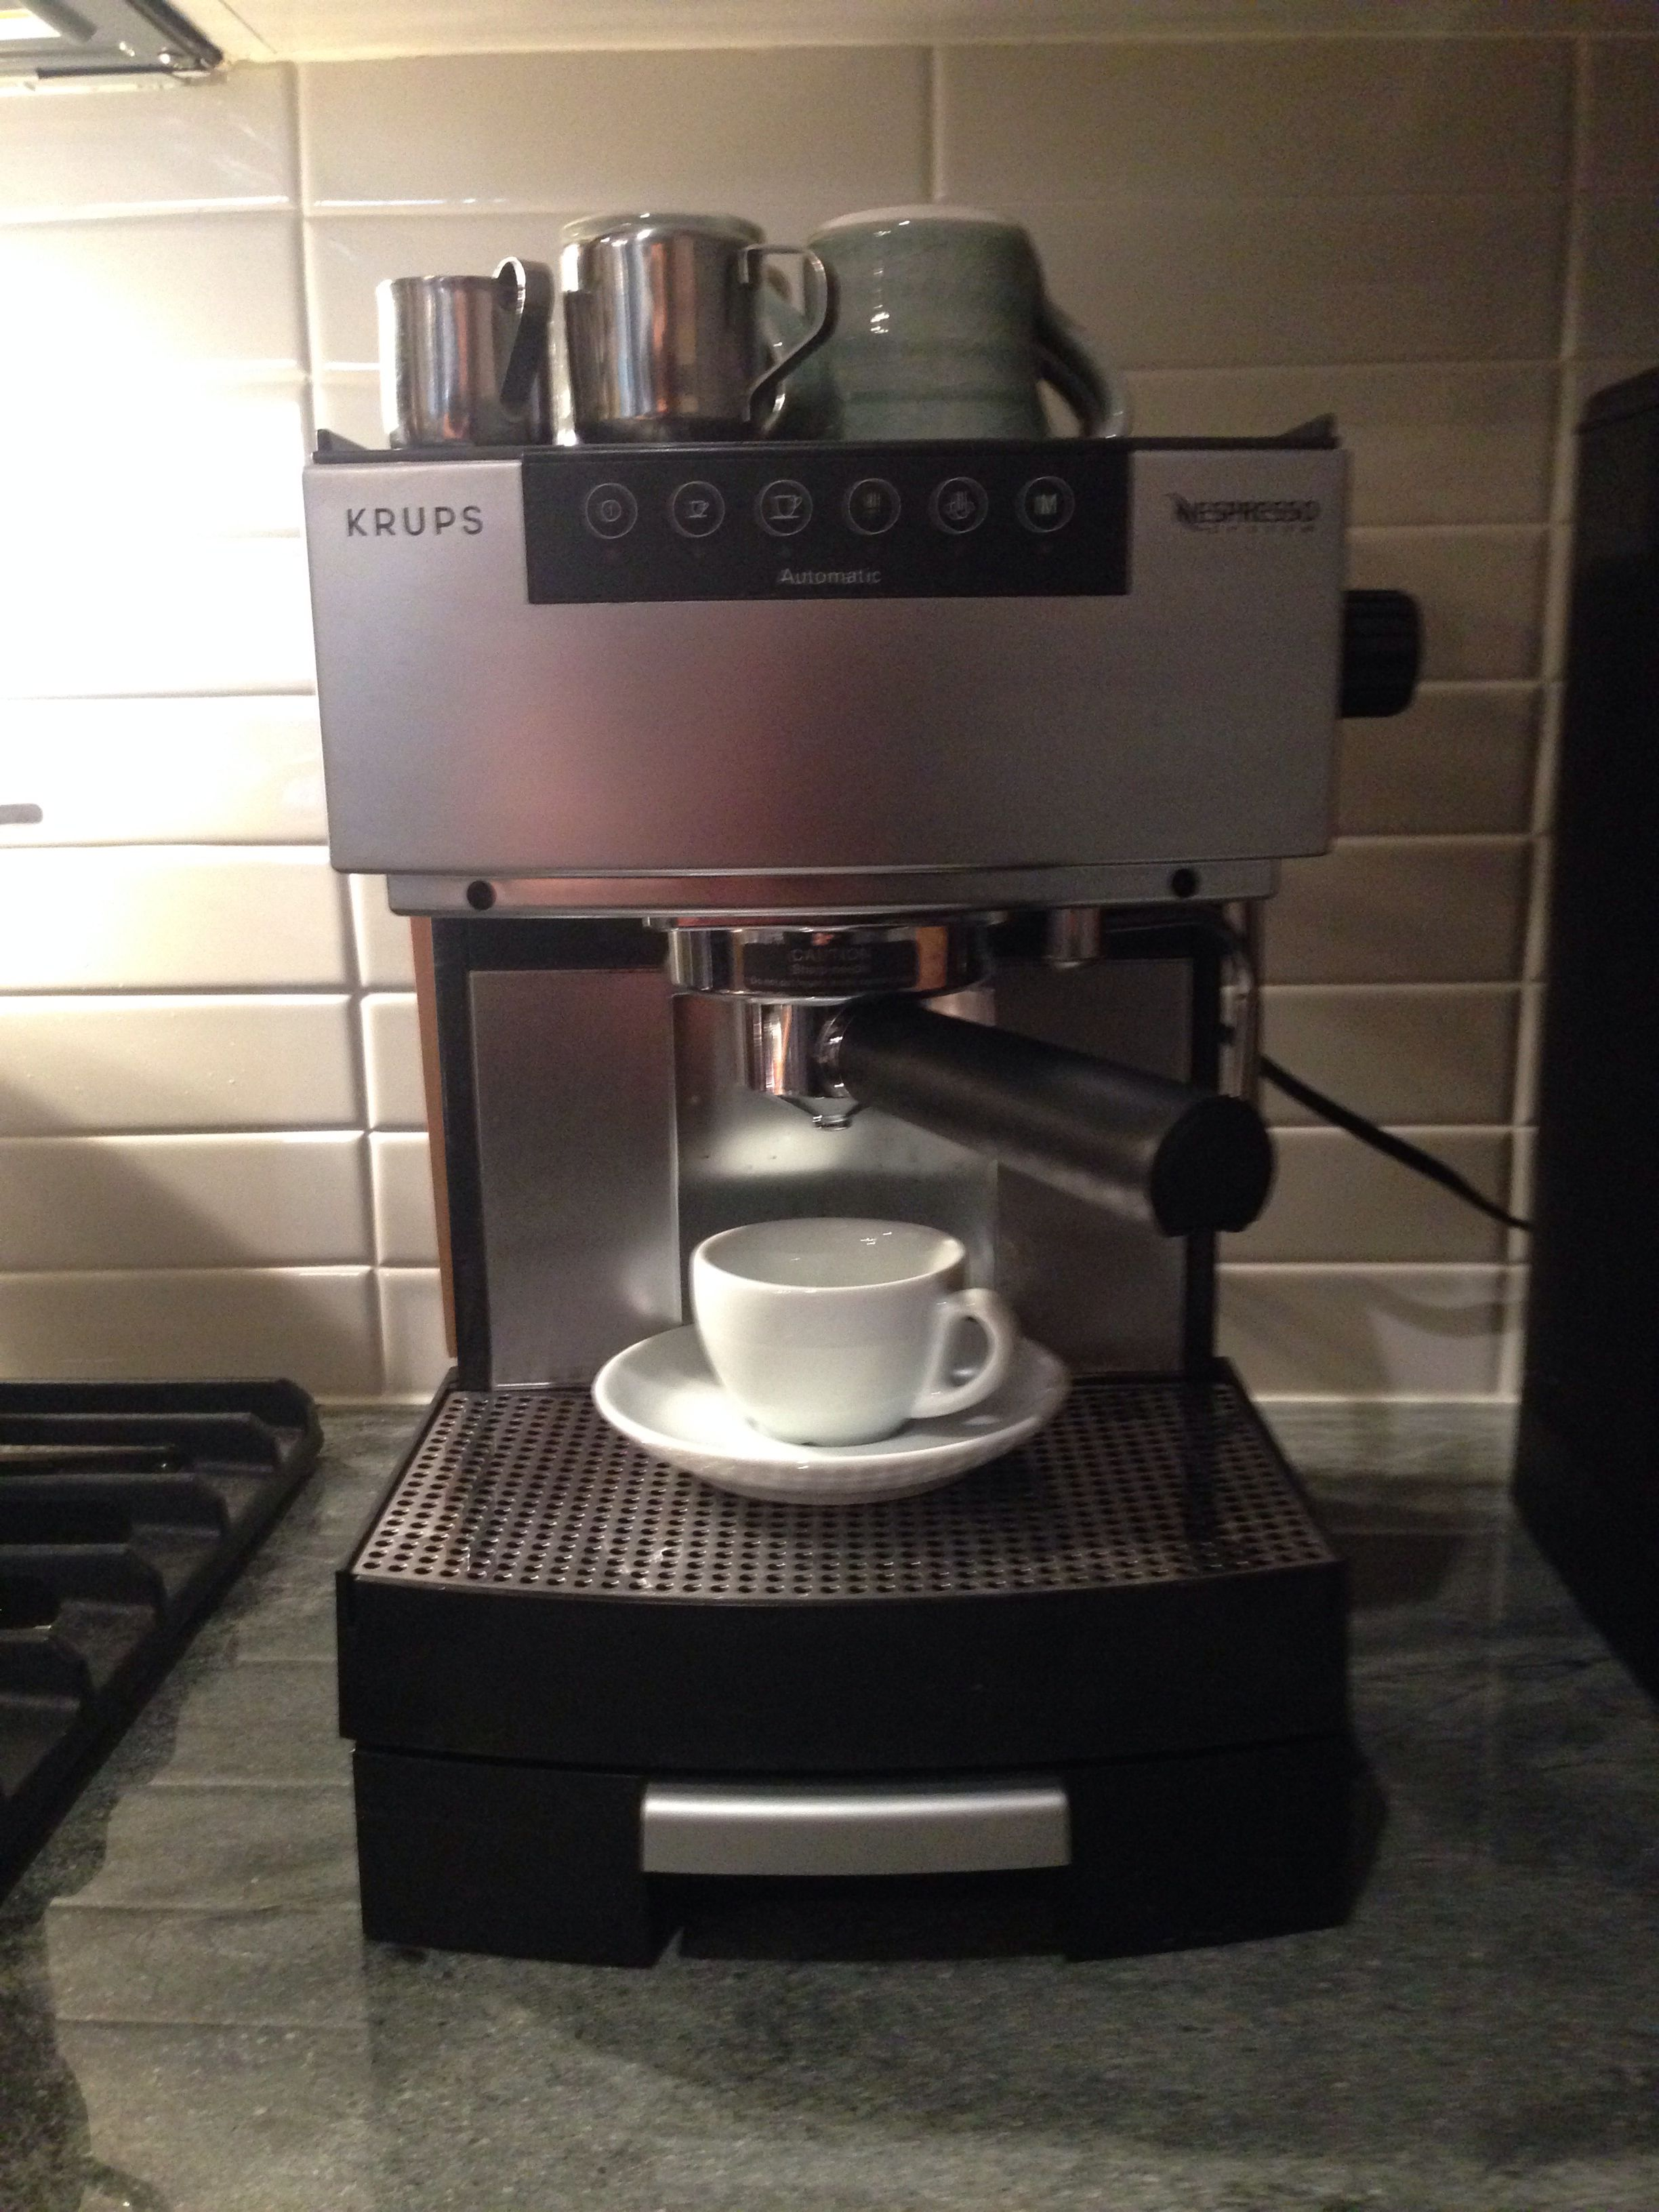 Krups Nespresso 554 A Over 13 Years Old And Still Brewing Krups Nespresso Coffee